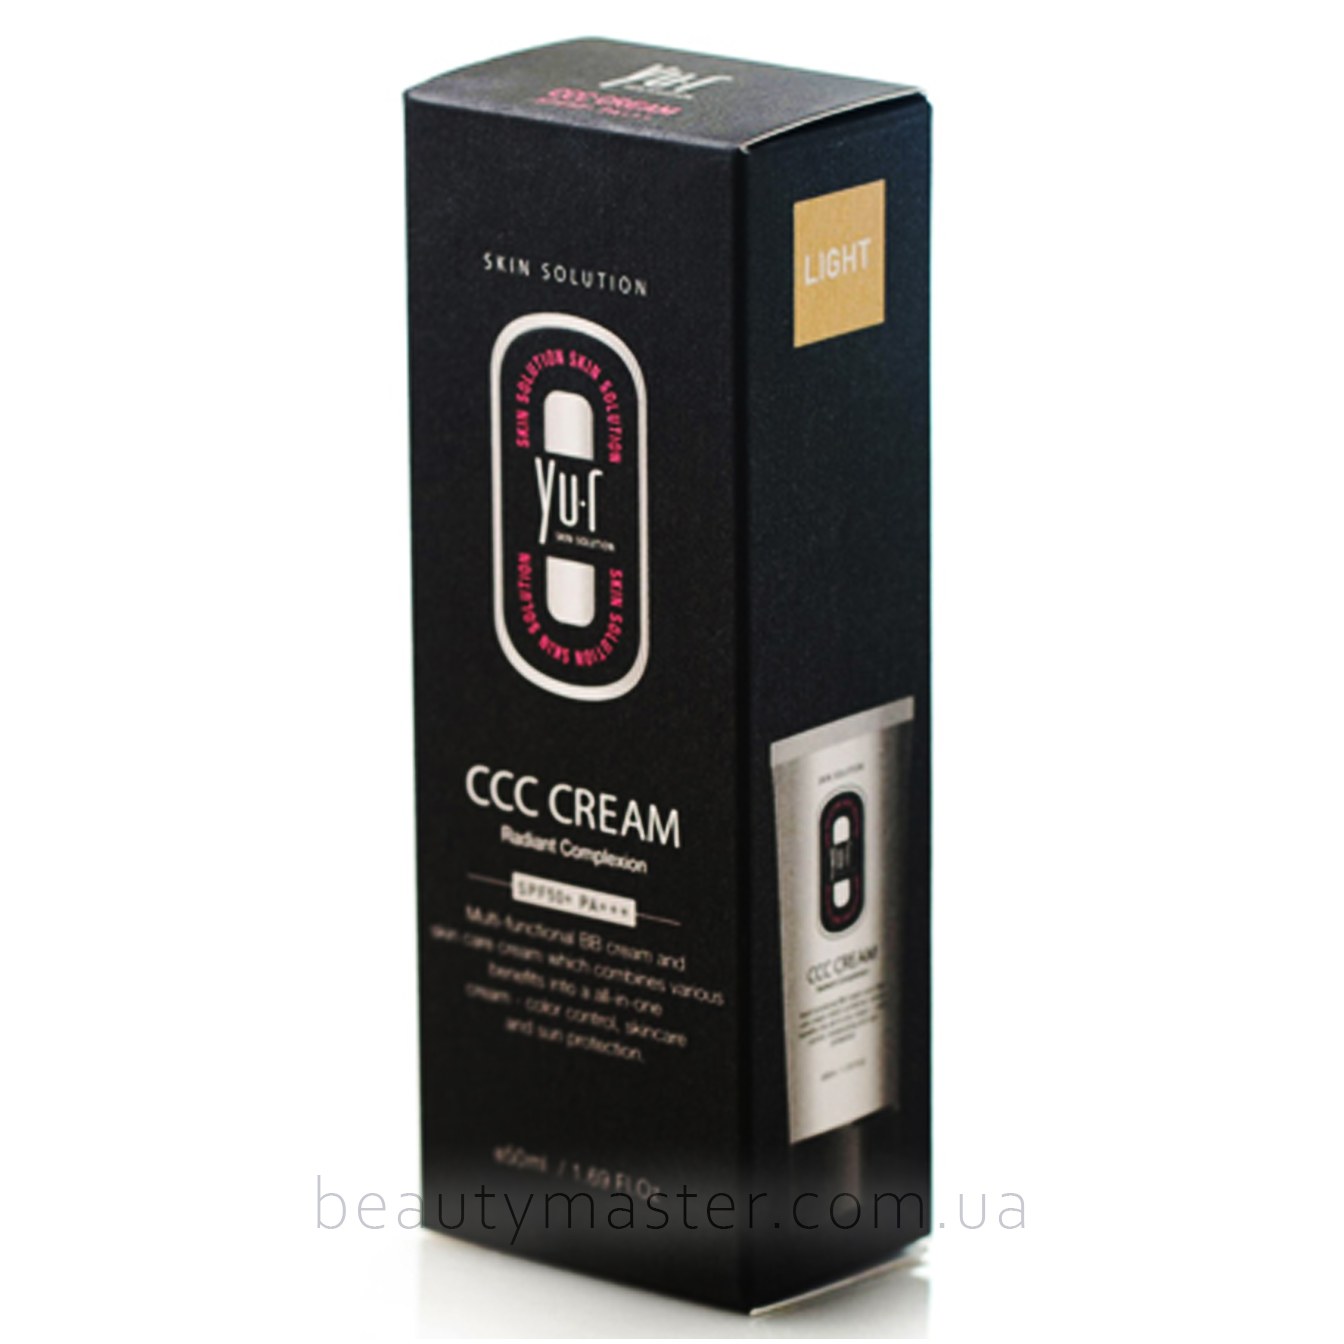 YU-R Крем CCC Cream Light SPF 50+ PA+++ 50мл Корея